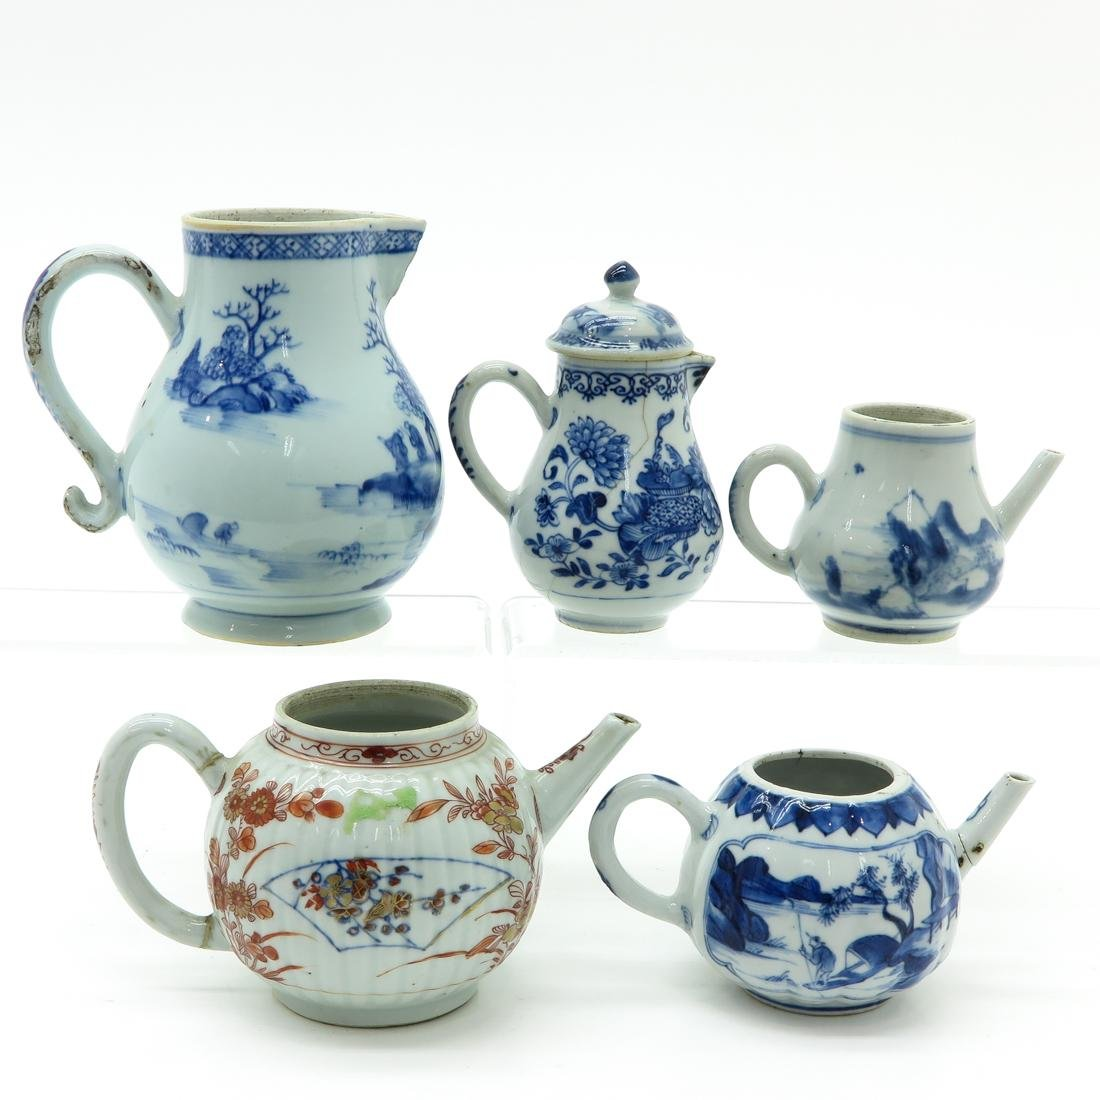 Diverse Lot of Creamers & Teapots - 3